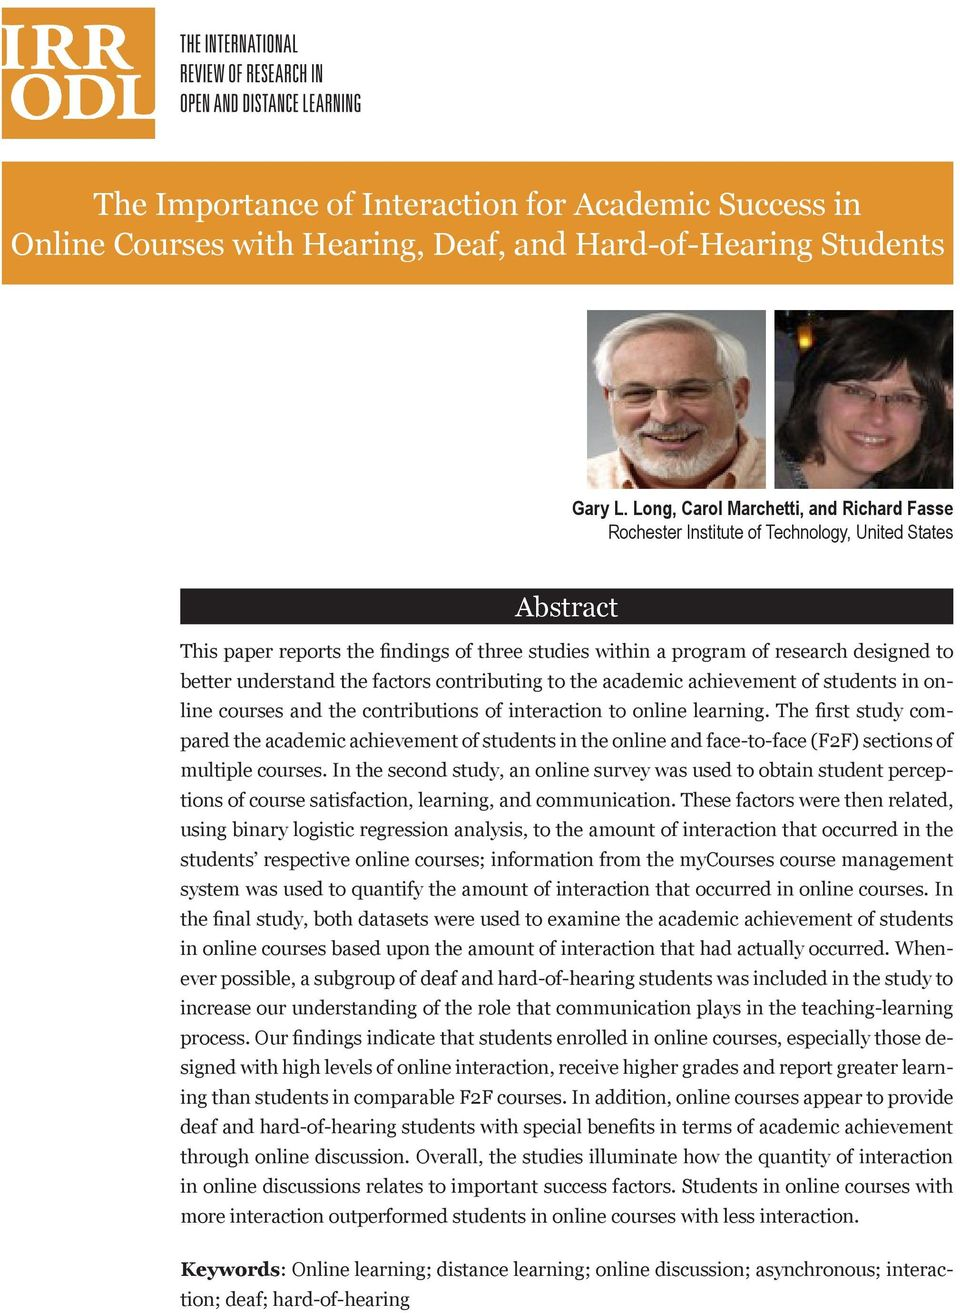 understand the factors contributing to the academic achievement of students in online courses and the contributions of interaction to online learning.